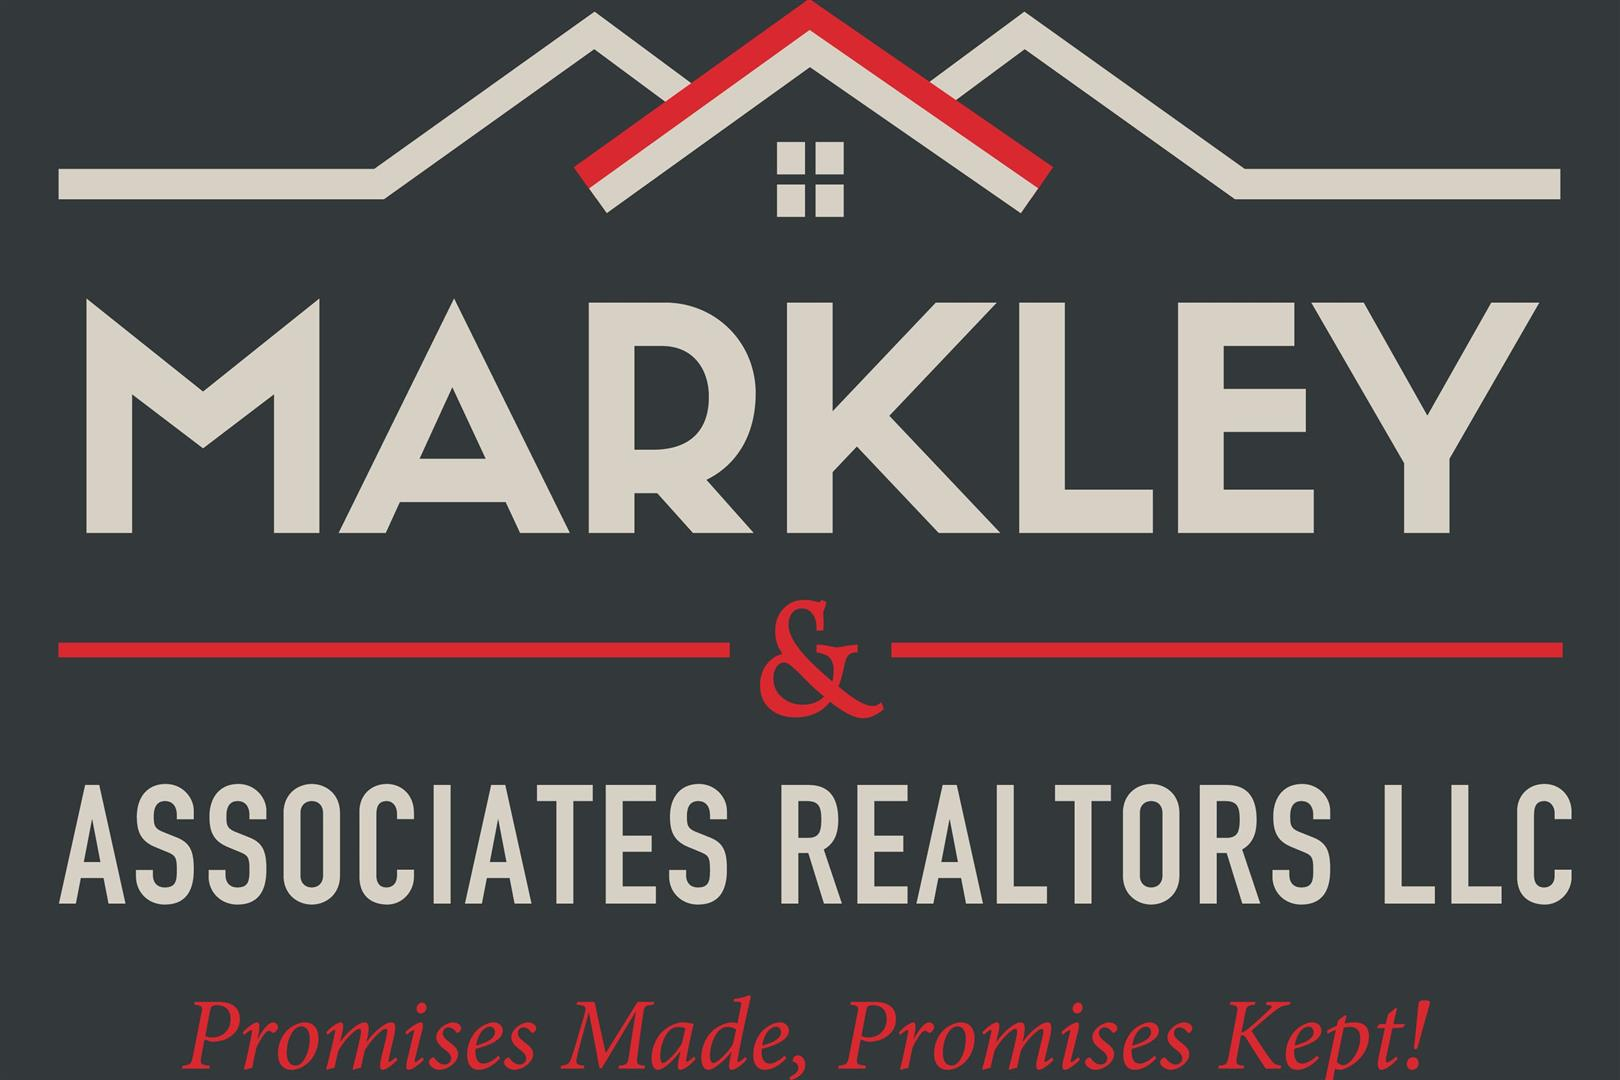 MARKLEY & ASSOCIATES REALTORS LLC.